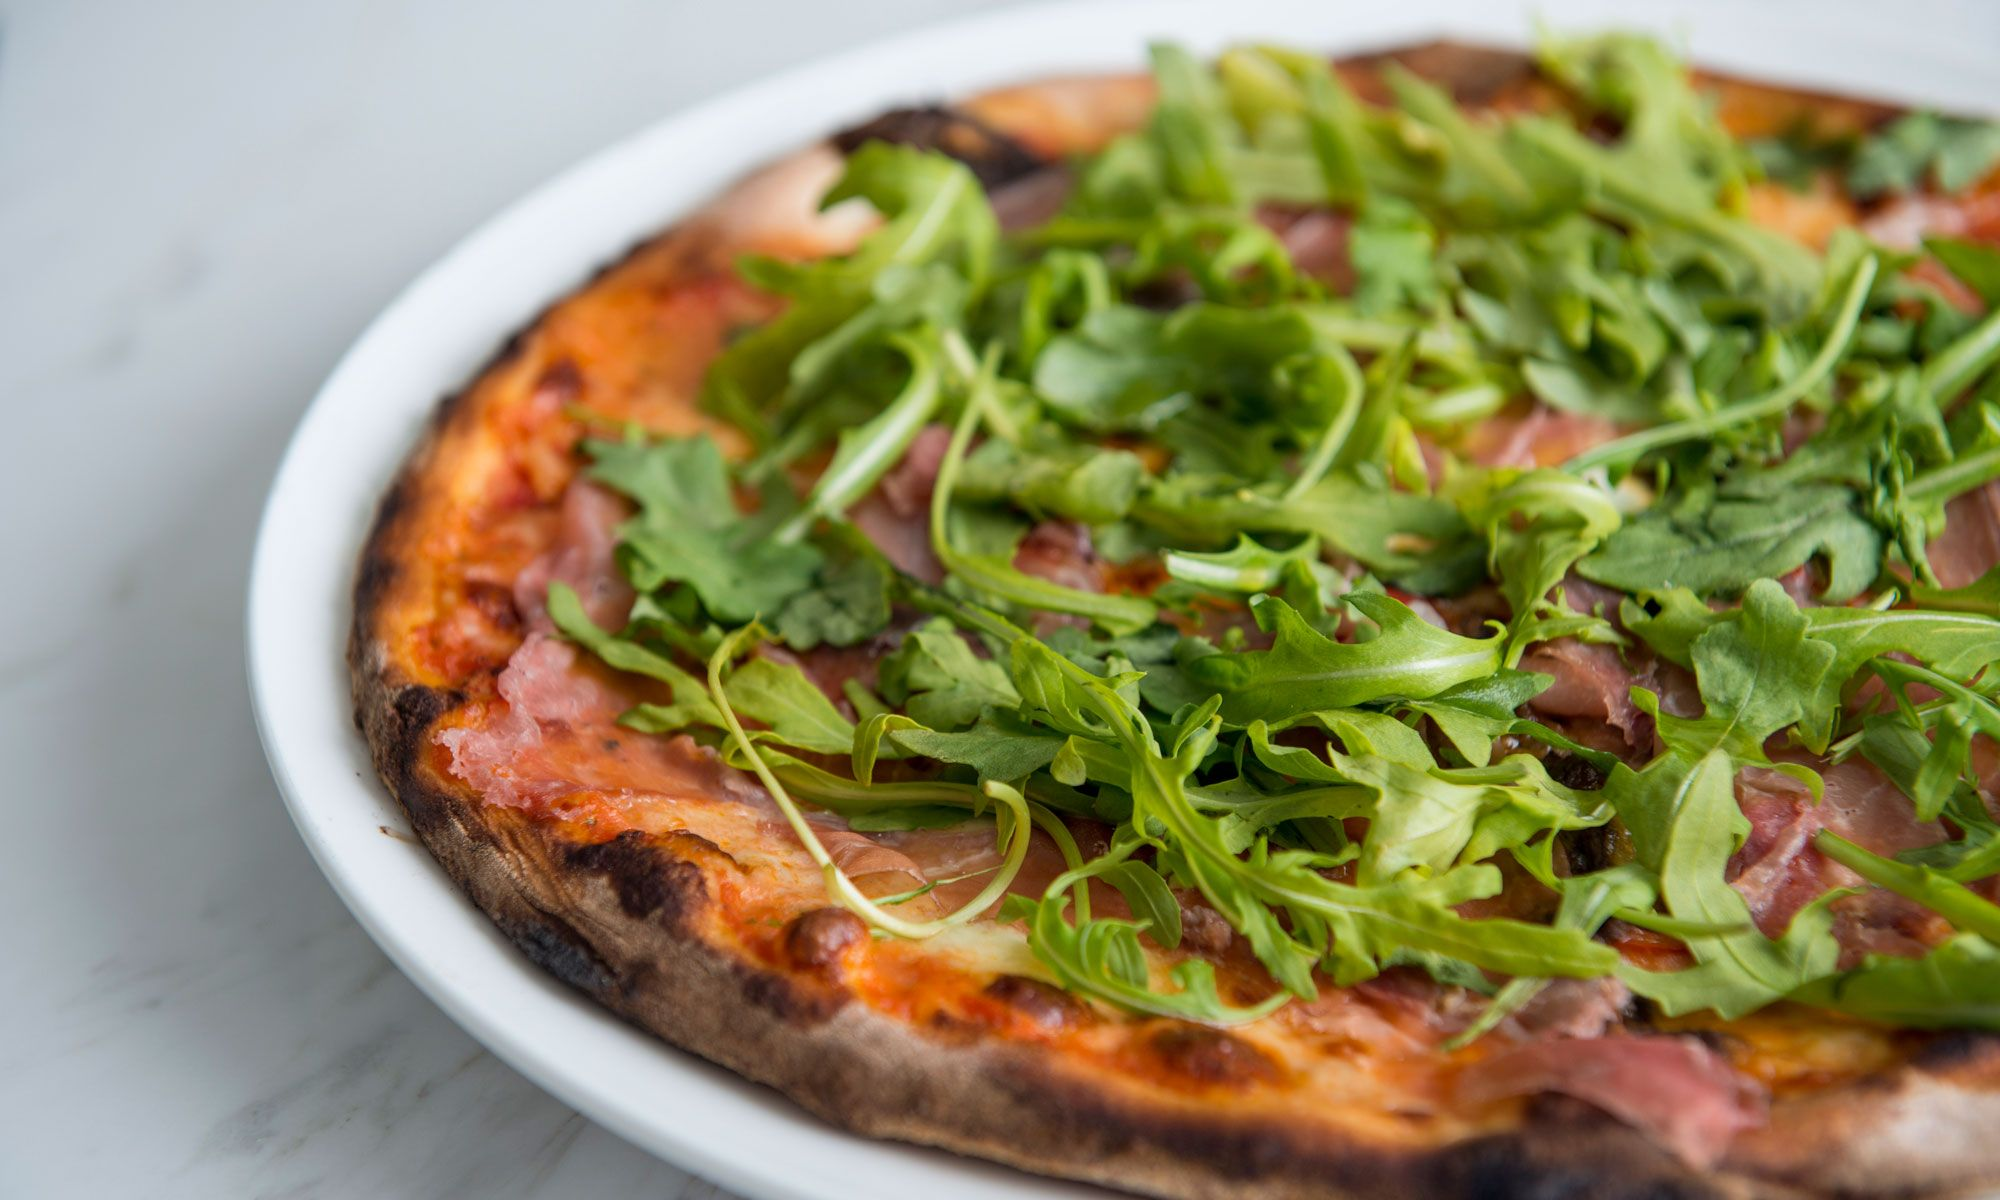 Amalfitana Pizza Bar Opens at The Pulse